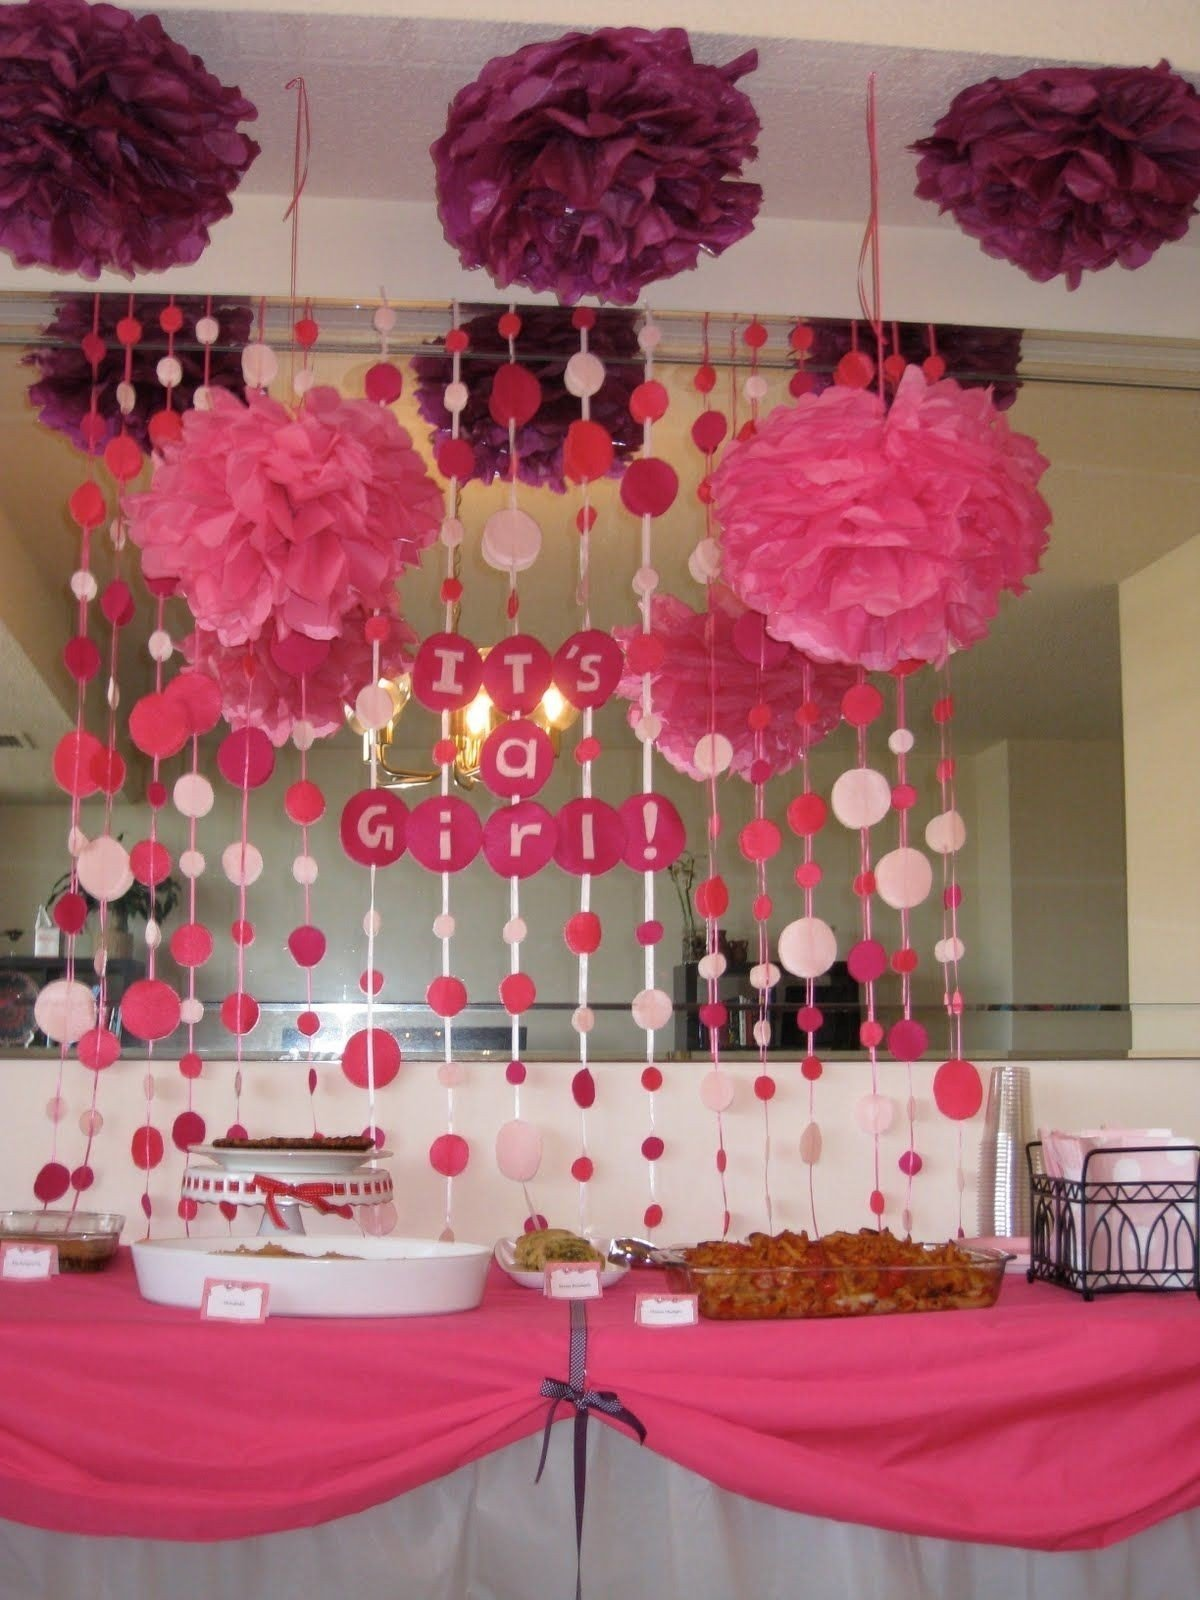 10 Nice Baby Shower Ideas For Girls Decorations baby shower decoration ideas for girl best baby shower centerpiece 1